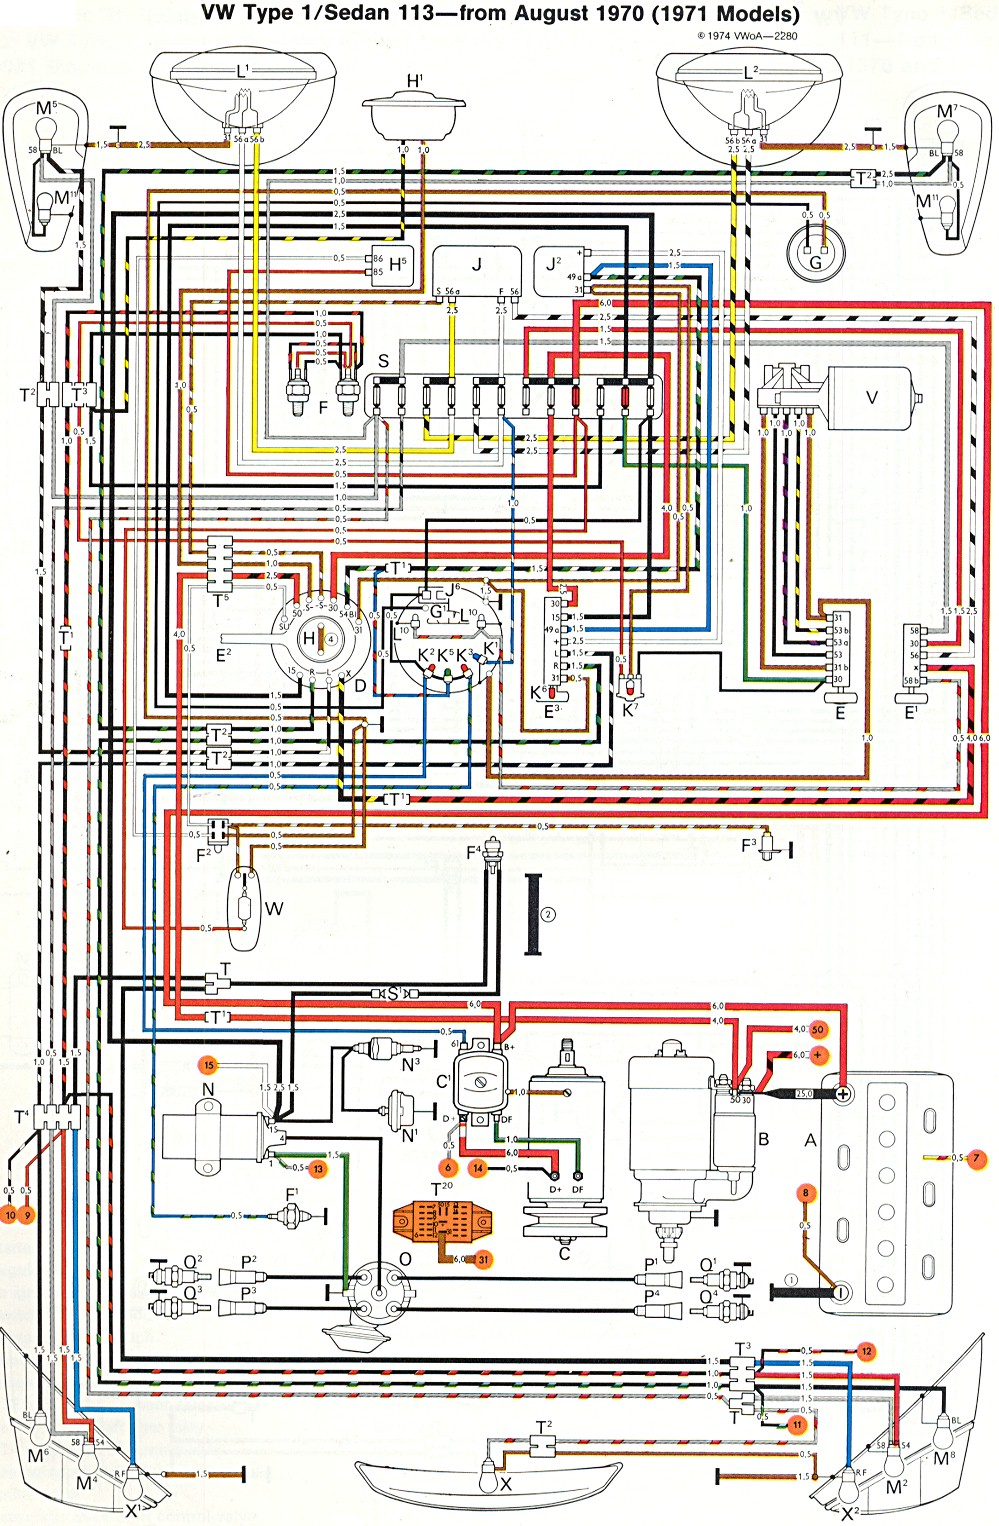 bug_super_71 vw wiring harness diagram cj7 wiring harness diagram \u2022 wiring DIY Lingerie Harness at virtualis.co